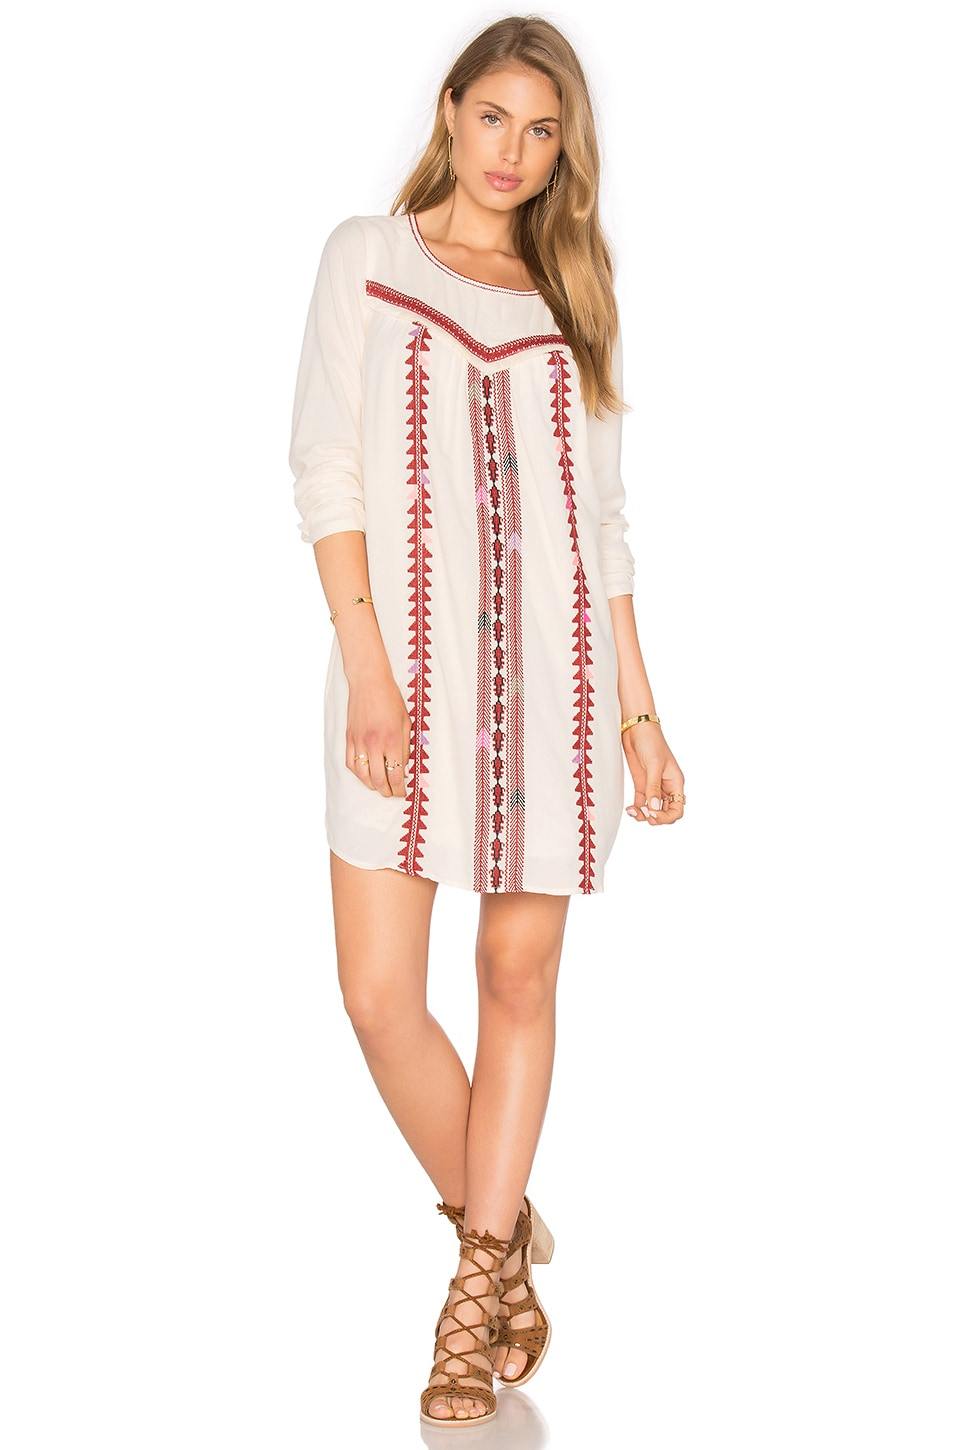 Embroidered Boho Dress by Maison Scotch